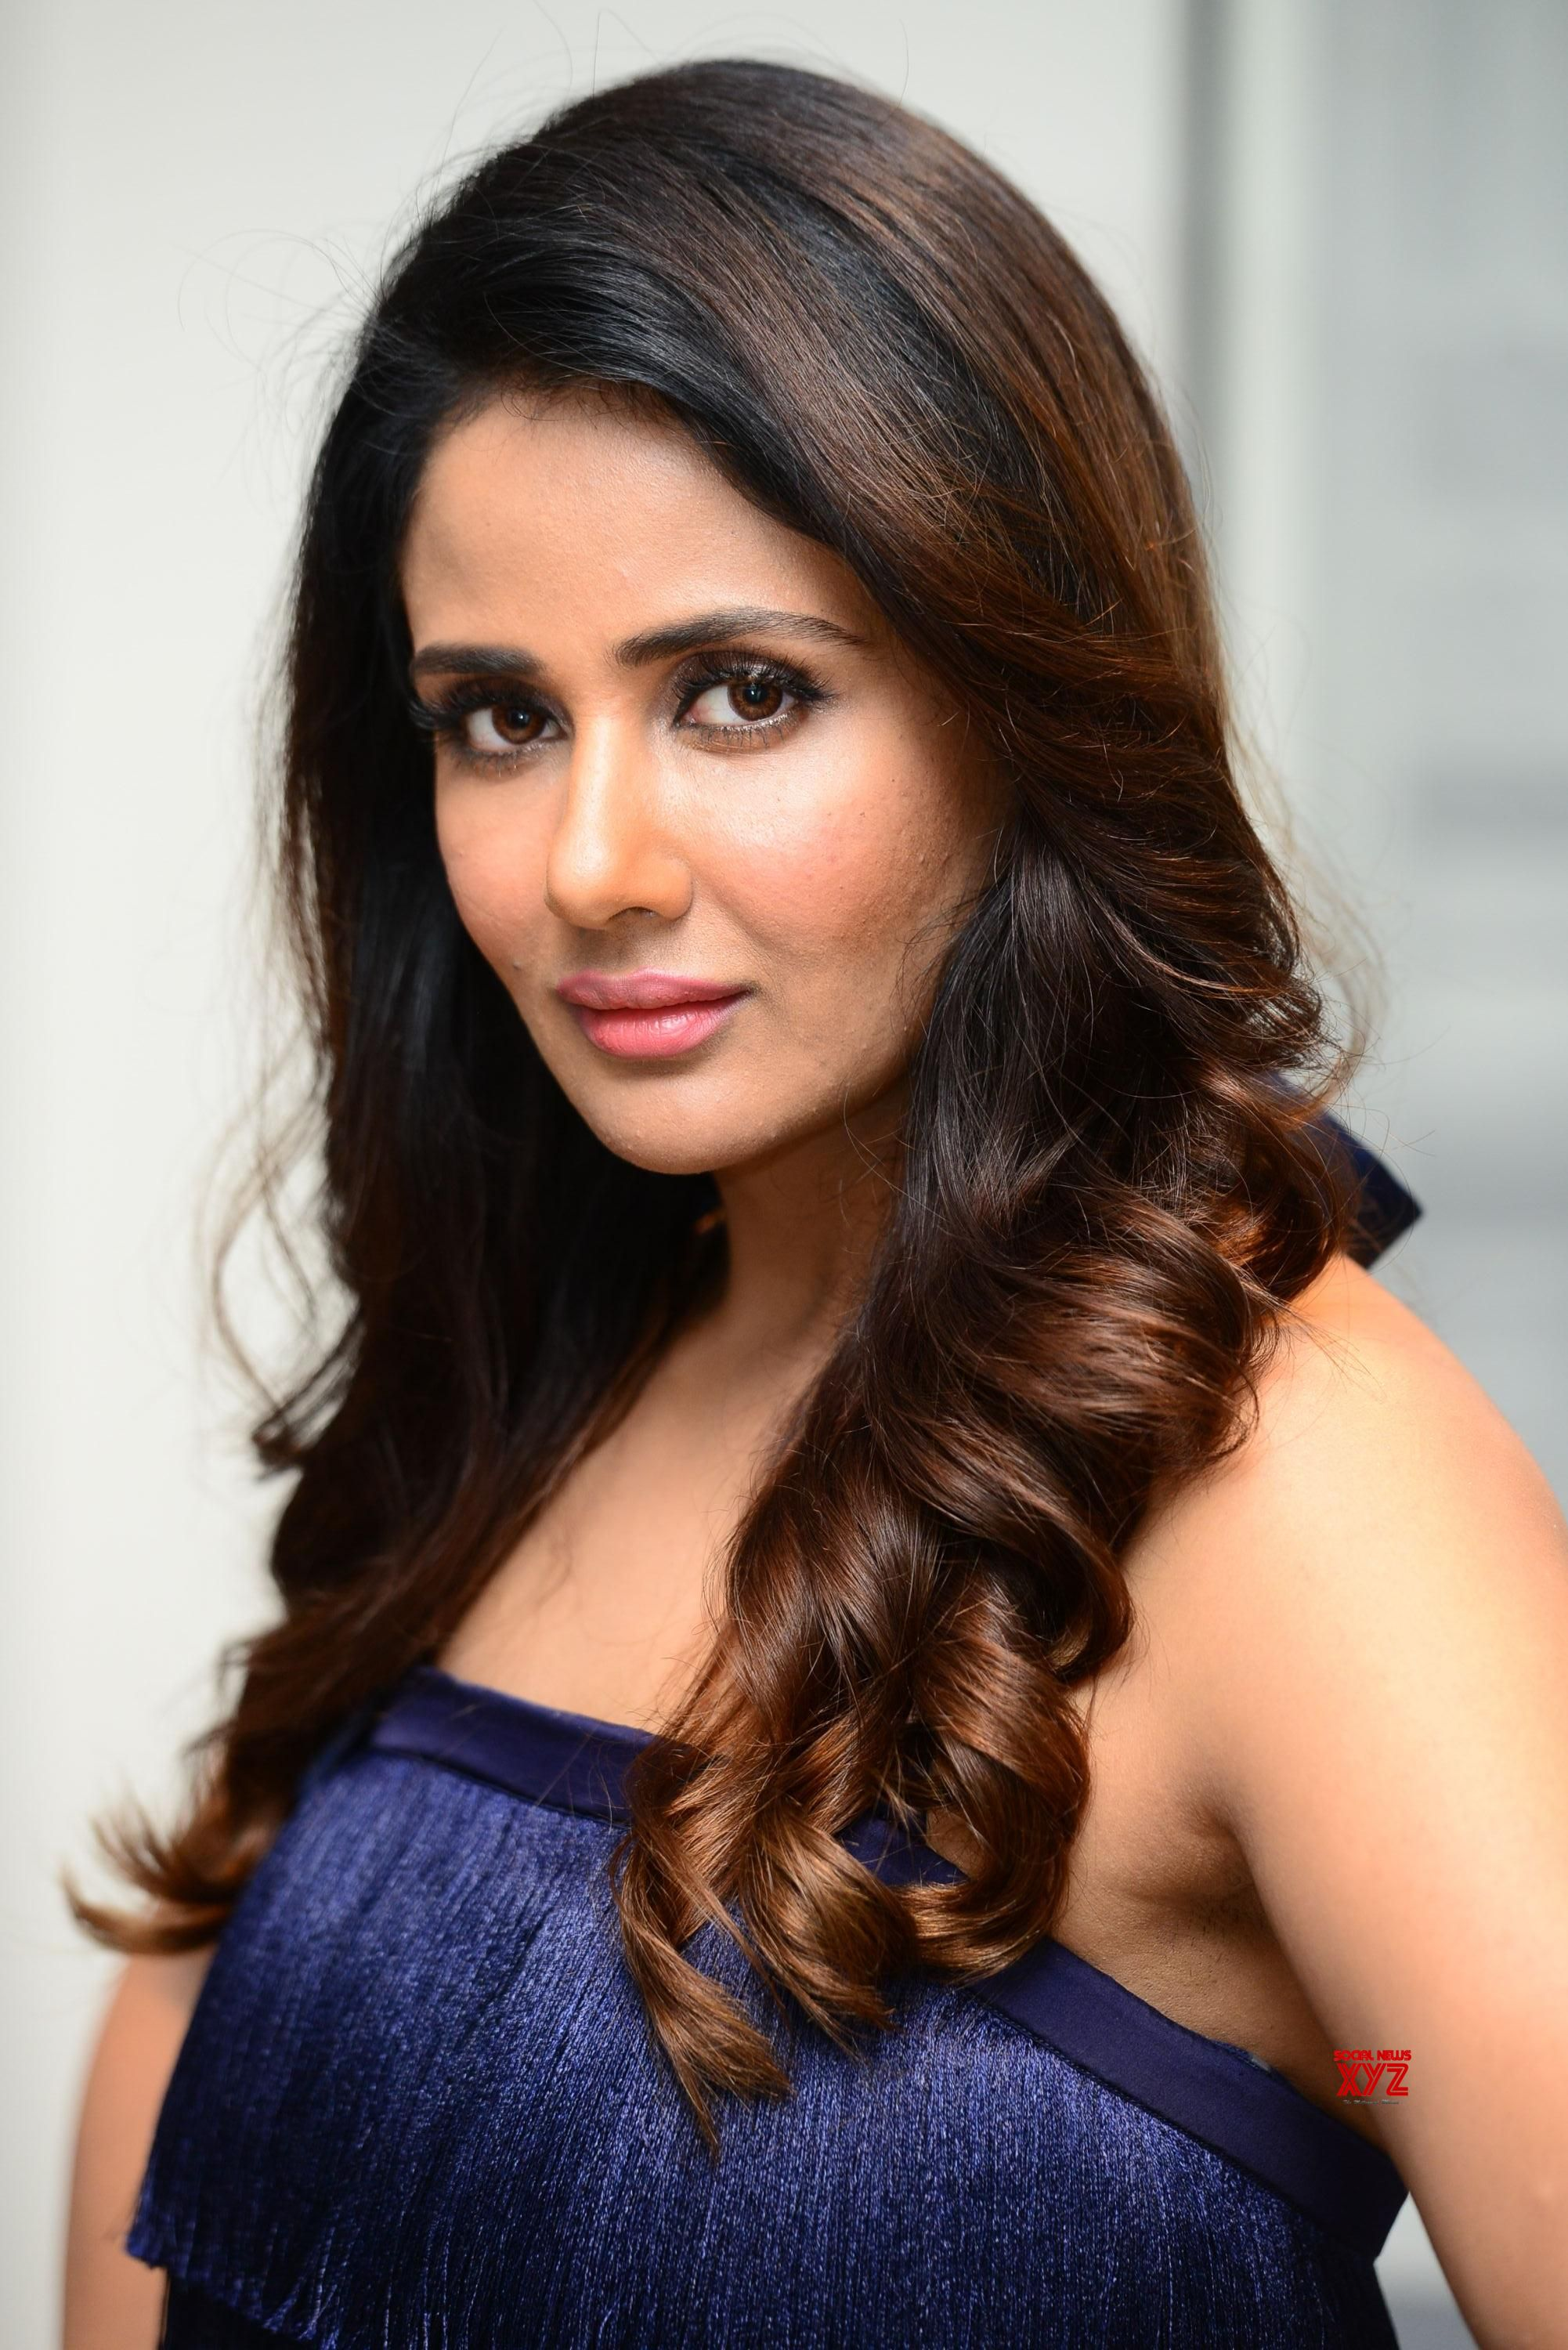 Parul Yadav naked (57 photo), Sexy, Cleavage, Boobs, underwear 2006